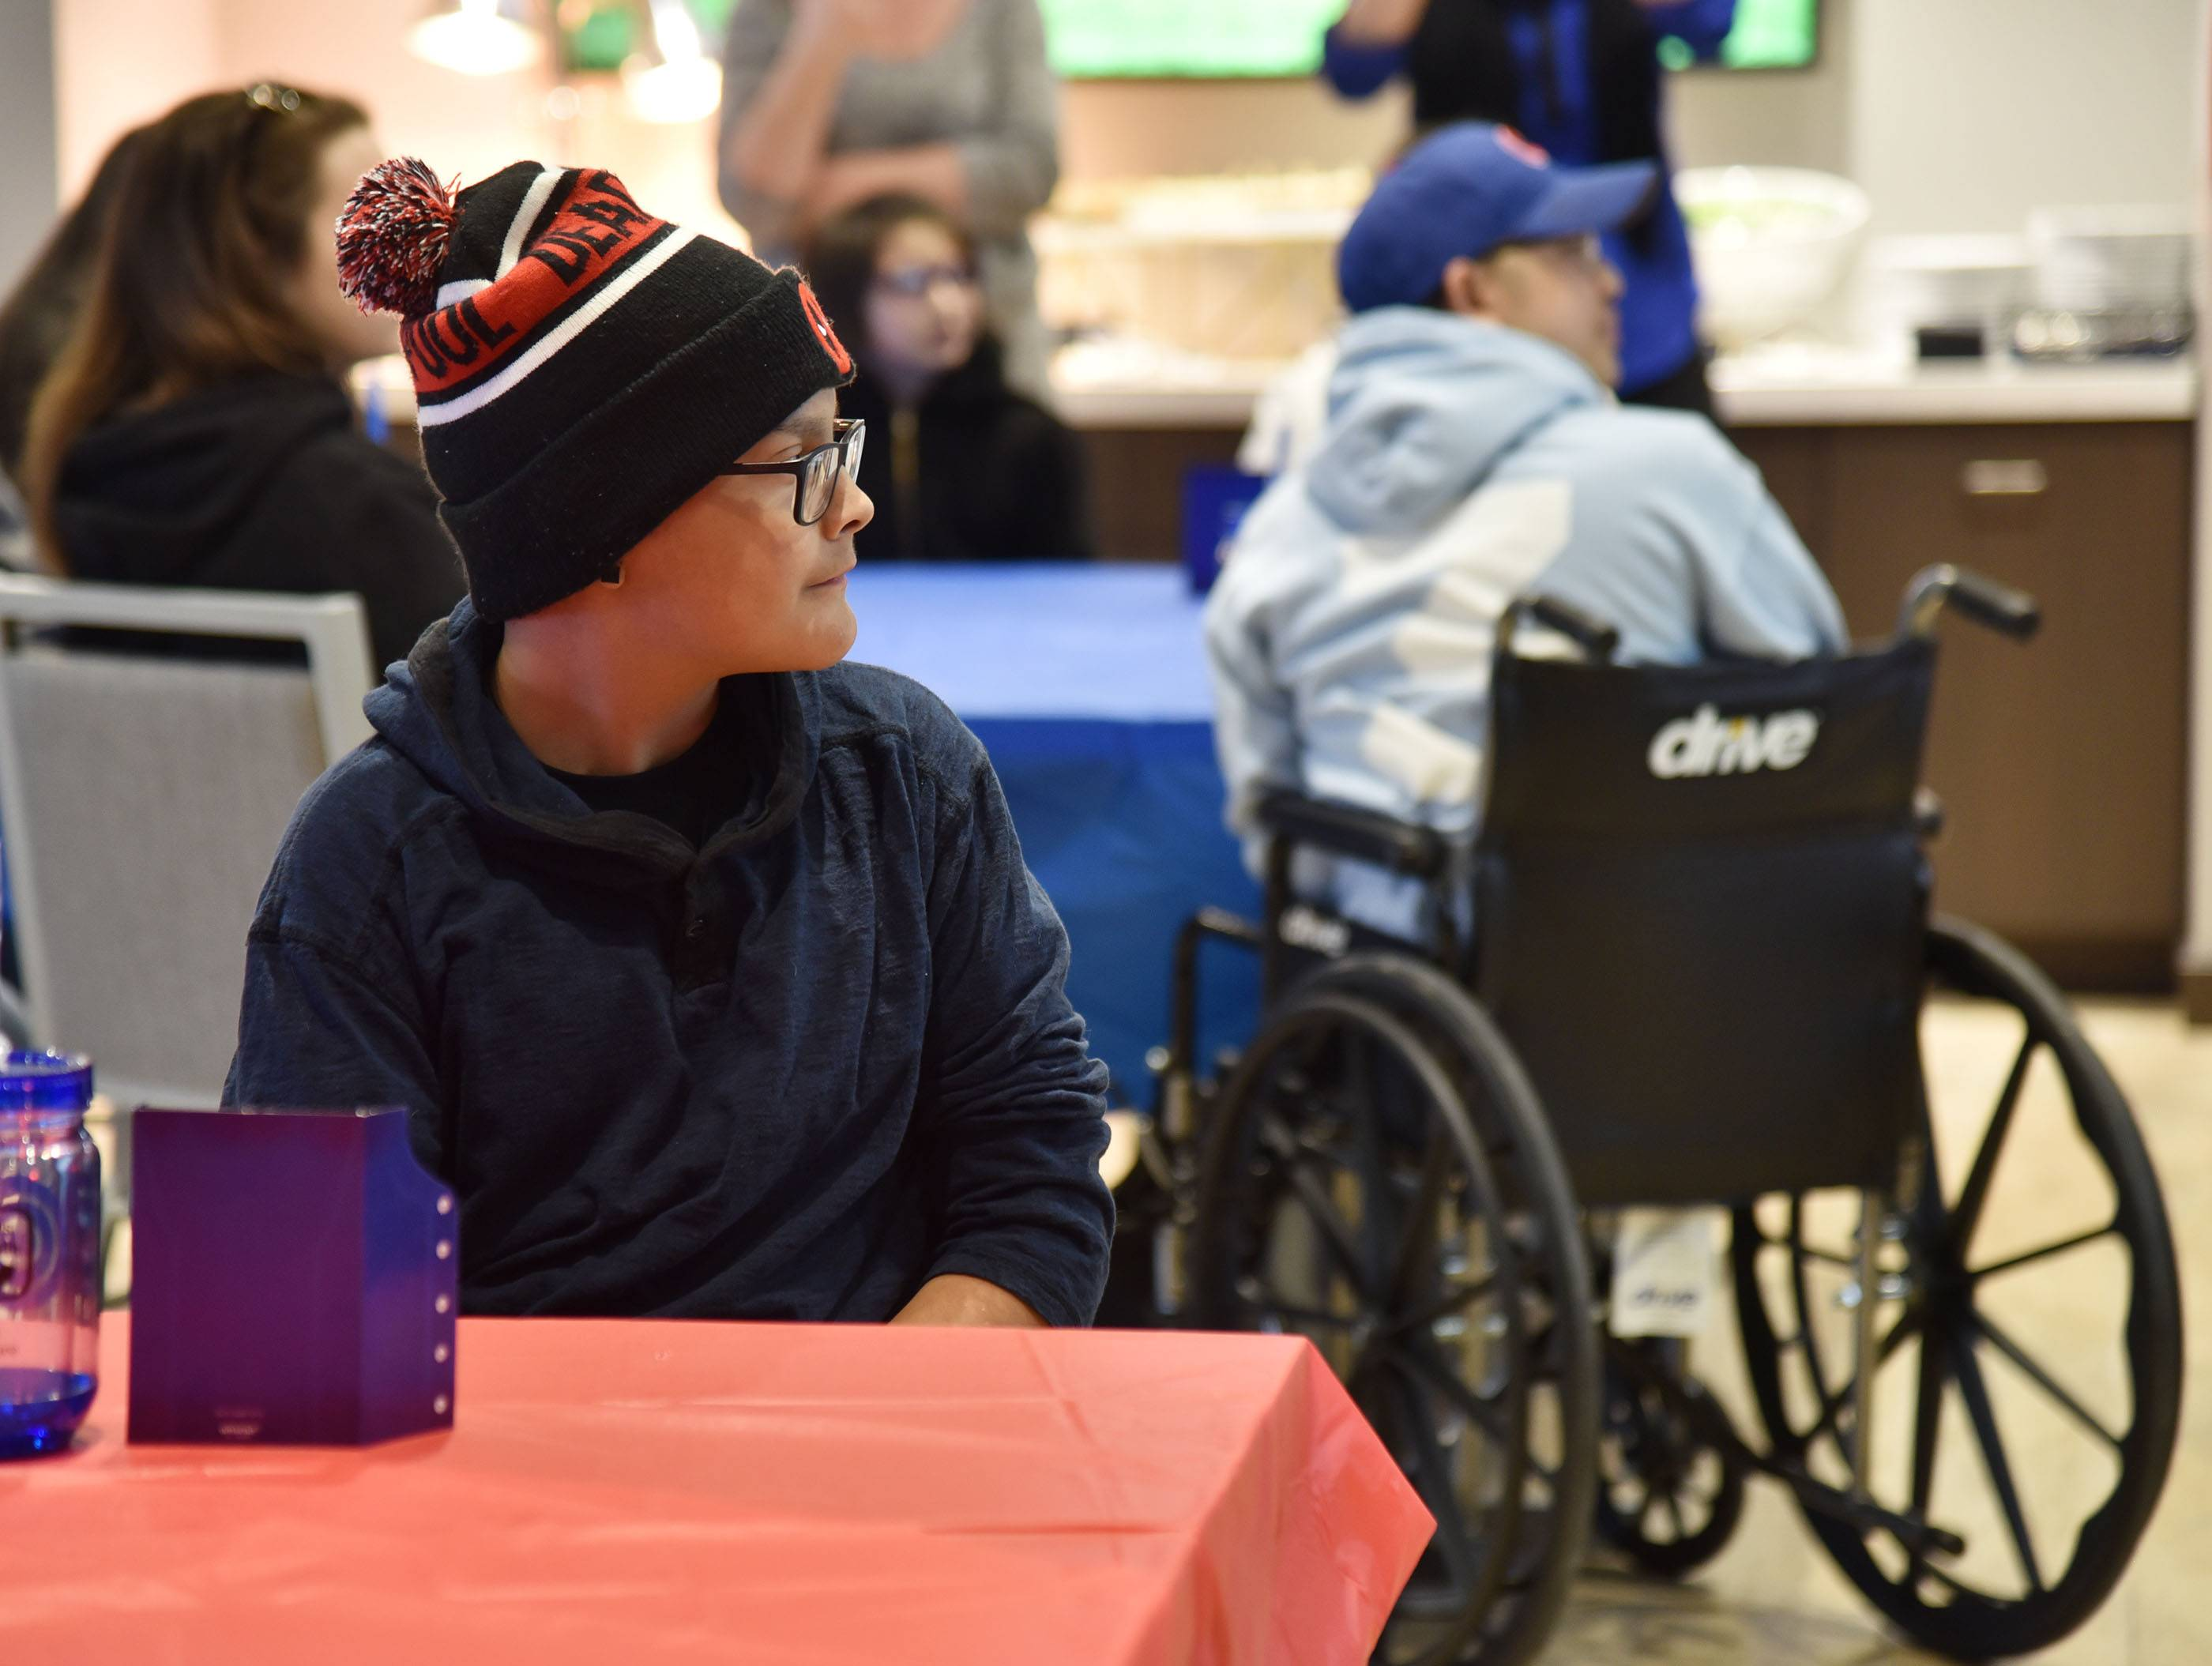 Jonathan Olmos, 16, of Des Plaines, foreground, and Zachary Lum, 17, of Sleepy Hollow watch a video during an event Wednesday at Wrigley Field where they were surprised with a trip to see the Chicago Cubs in spring training in Arizona. They are among a group of four teens, who are patients at Advocate Children's Hospital in Park Ridge being treated to the all-expenses-paid trip.